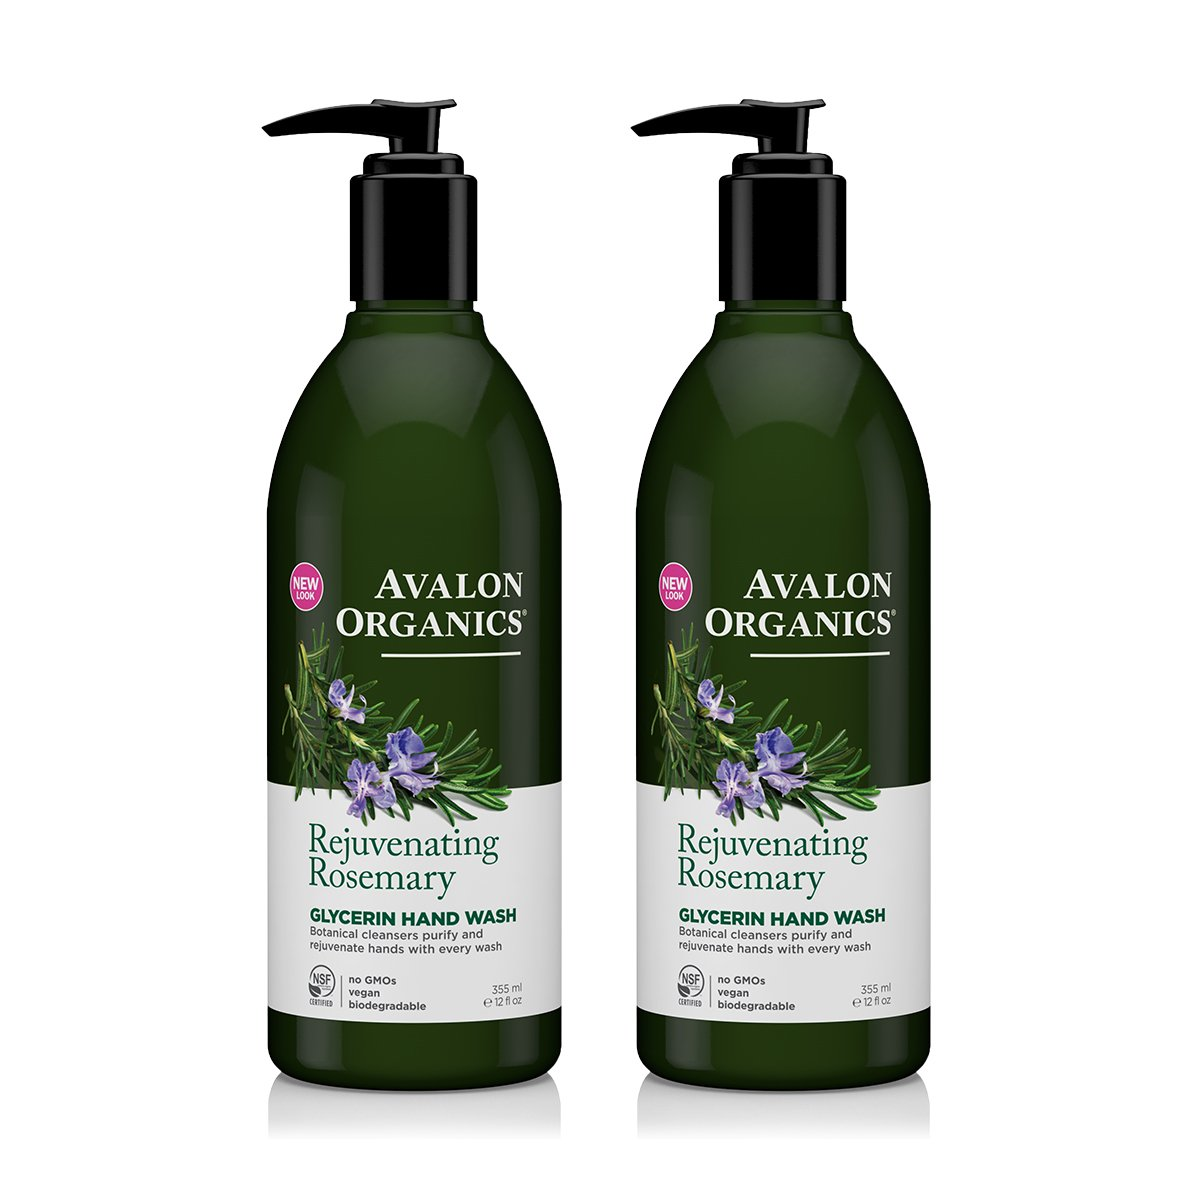 Avalon Organics Glycerin Hand Soap Rosemary With Organic Rosemary Essential Oil, Panthenol, Organic Aloe and Vitamin E, 12 fl oz (355 ml) (Pack of 2)